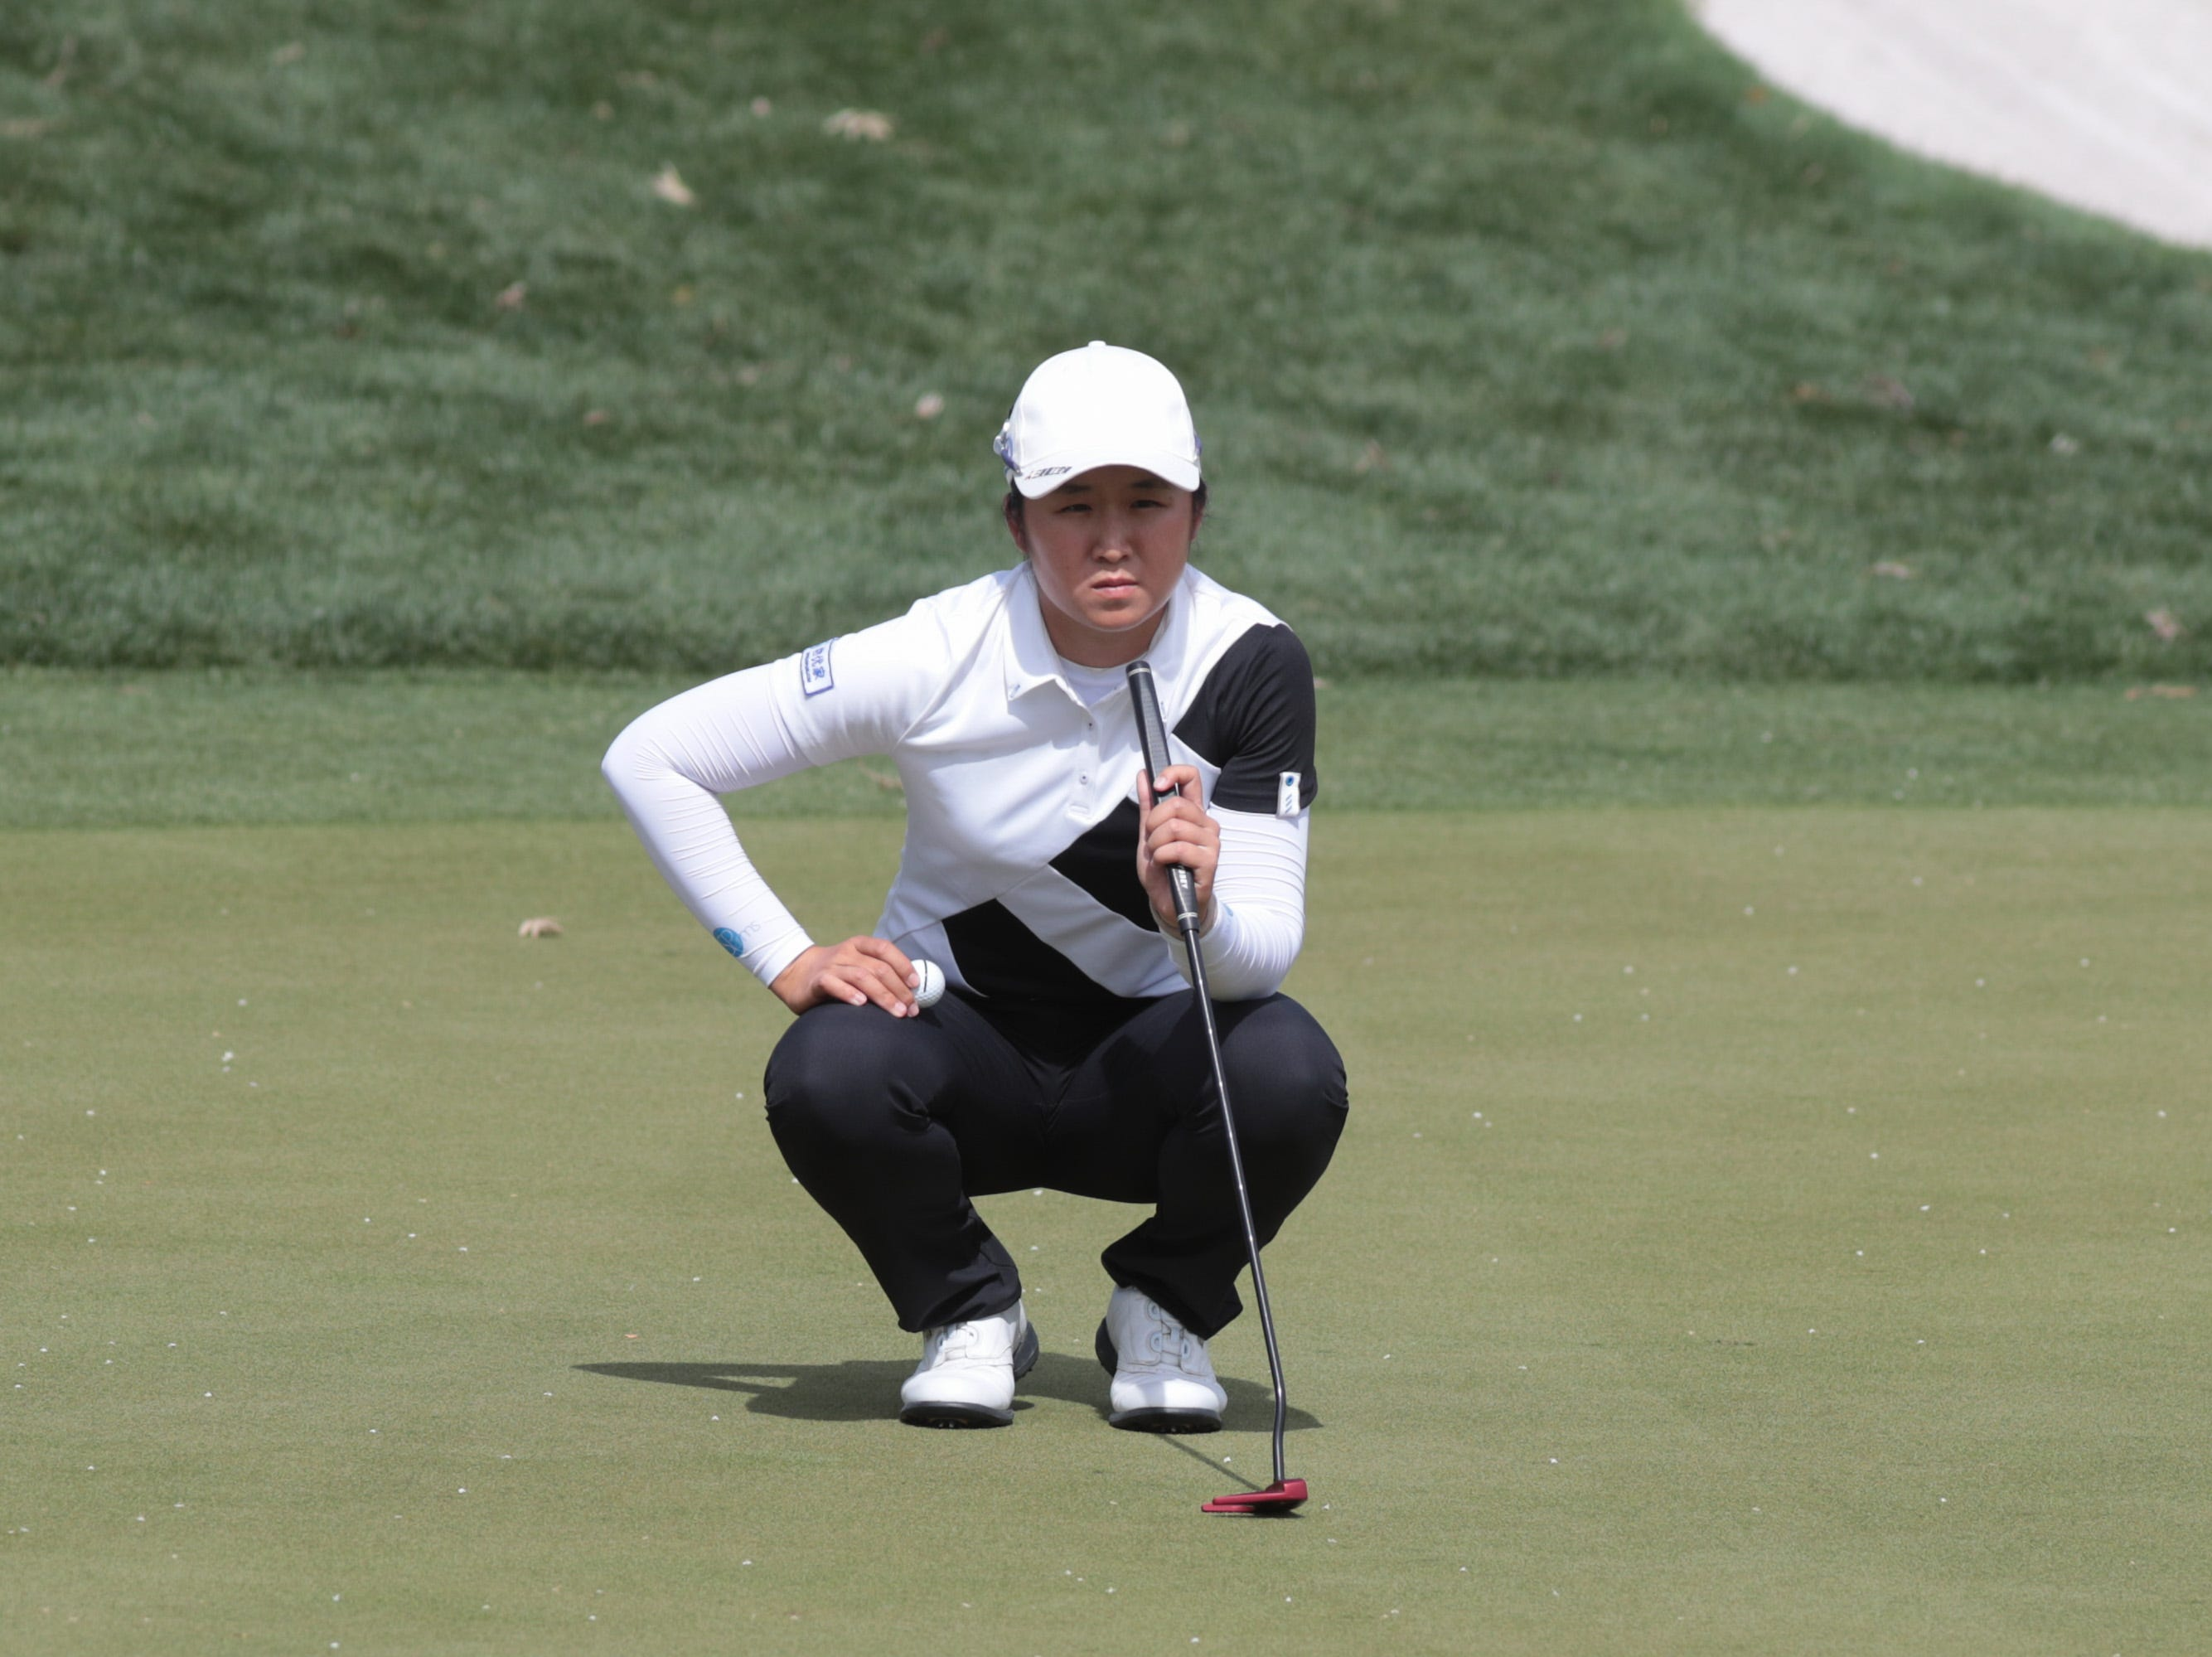 Jing Yan prepares to putt on the Dinah Shore Course at the ANA Inspiration, Rancho Mirage, Calif., April 6, 2019.